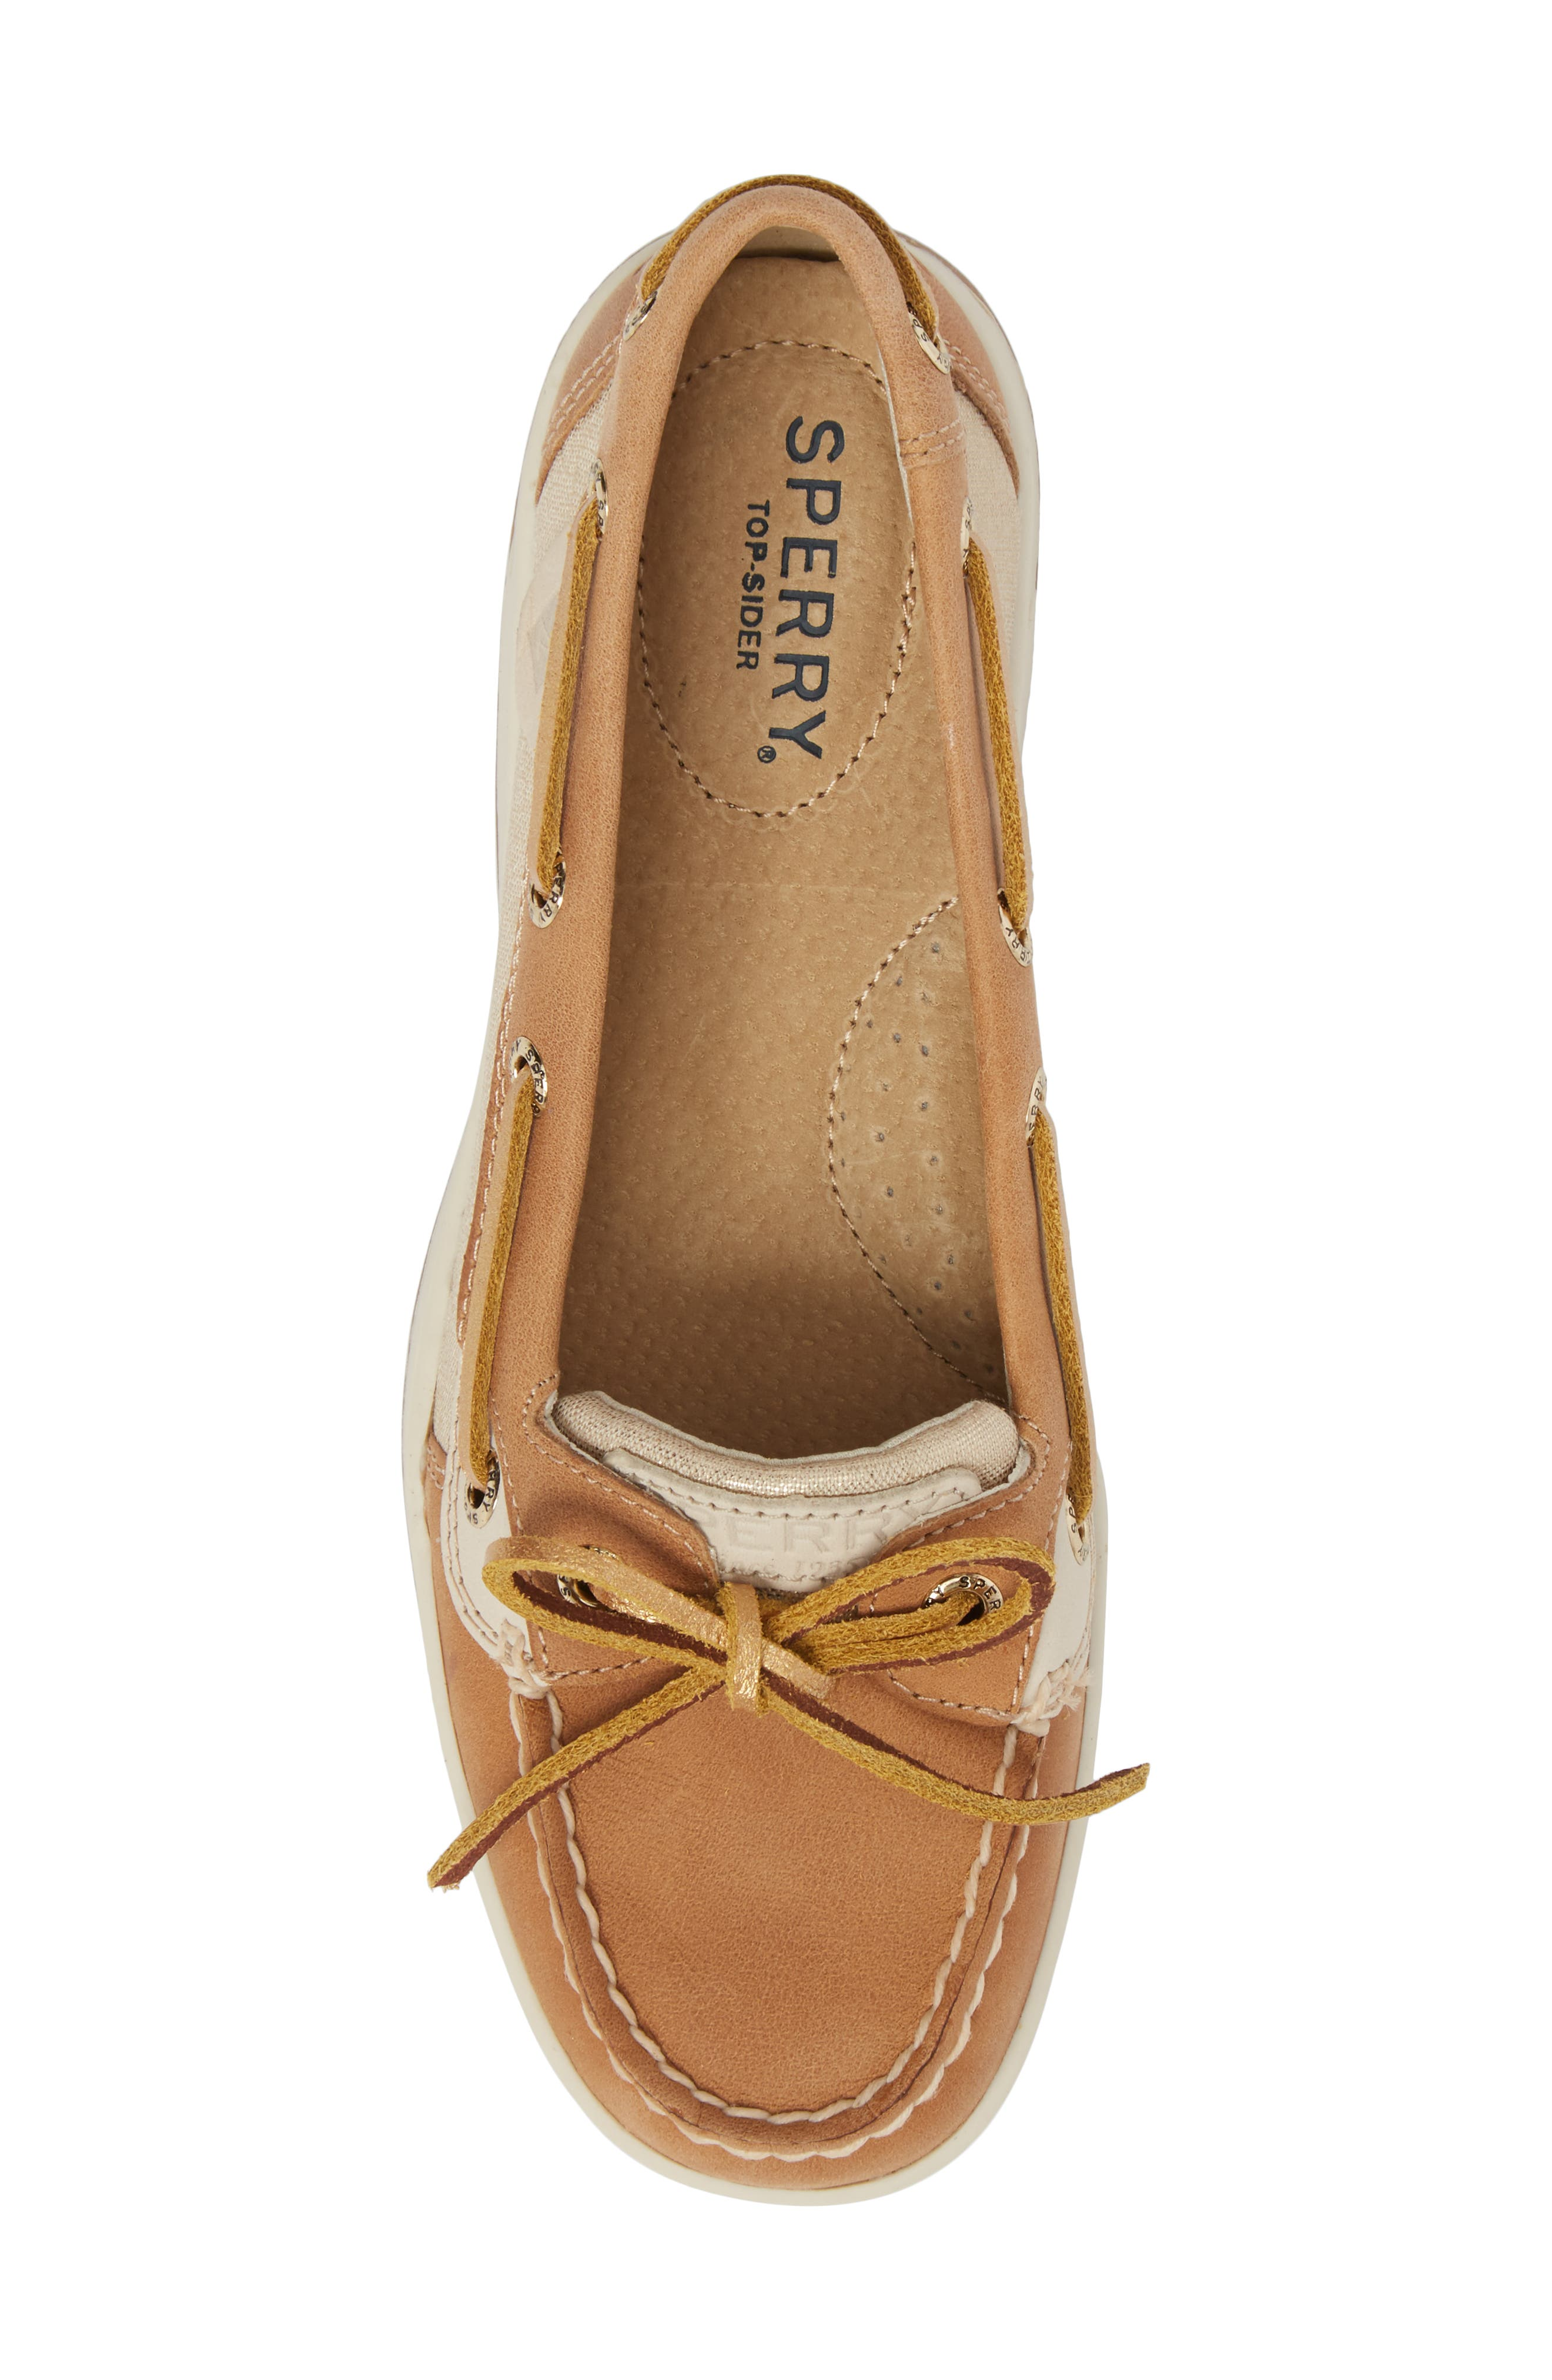 'Angelfish' Boat Shoe,                             Alternate thumbnail 5, color,                             LINEN METALLIC LEATHER